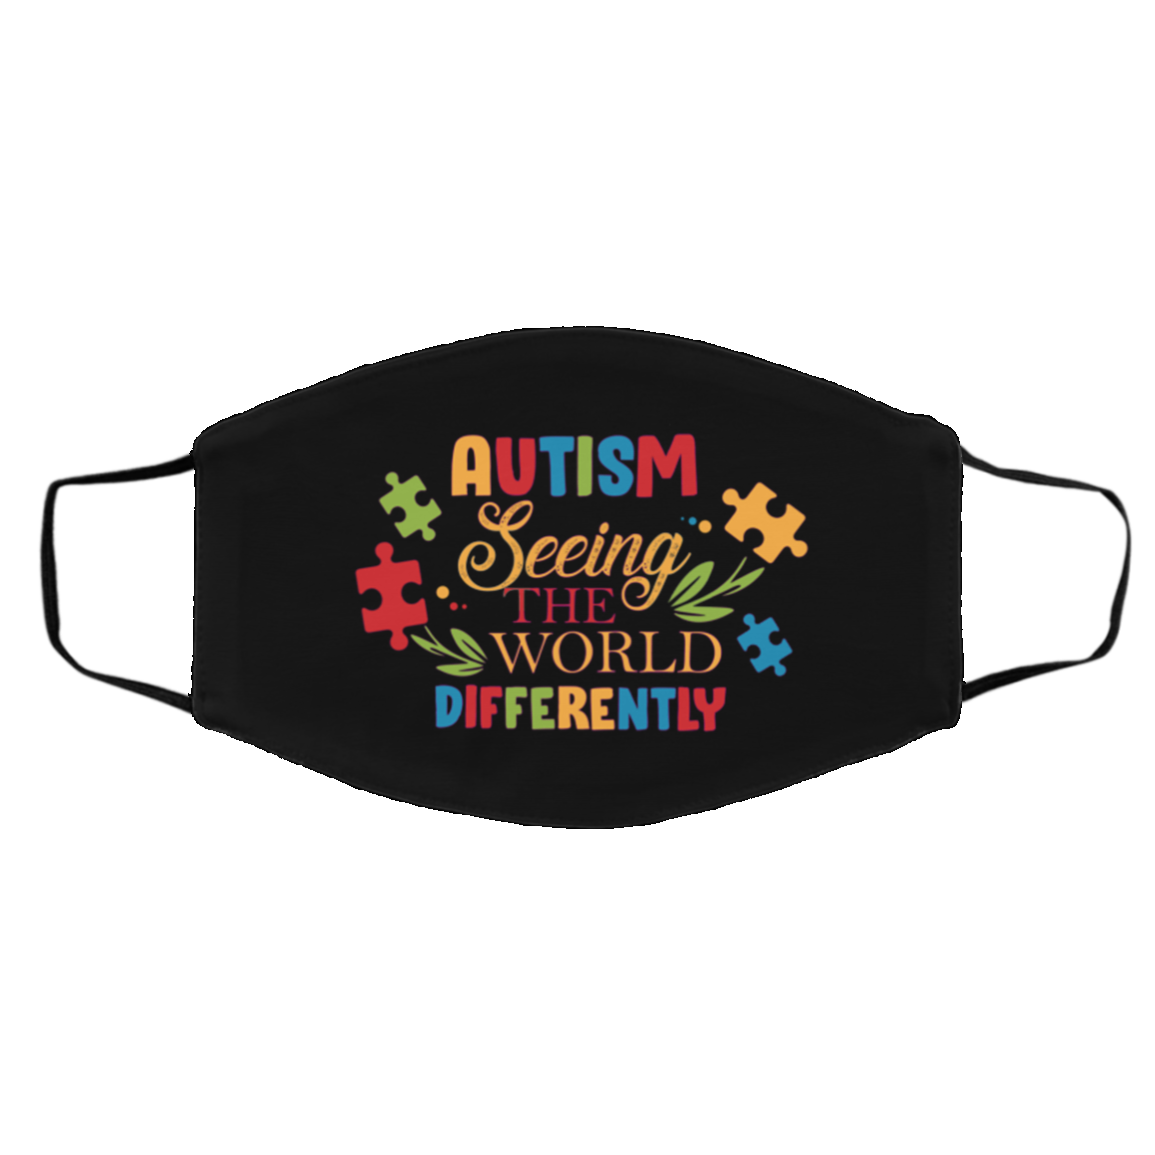 Autism Seeing The World Differently Washable Reusable Custom Printed Cloth Face Mask Cover, Black, Cloth Face Cover – Medium/Large